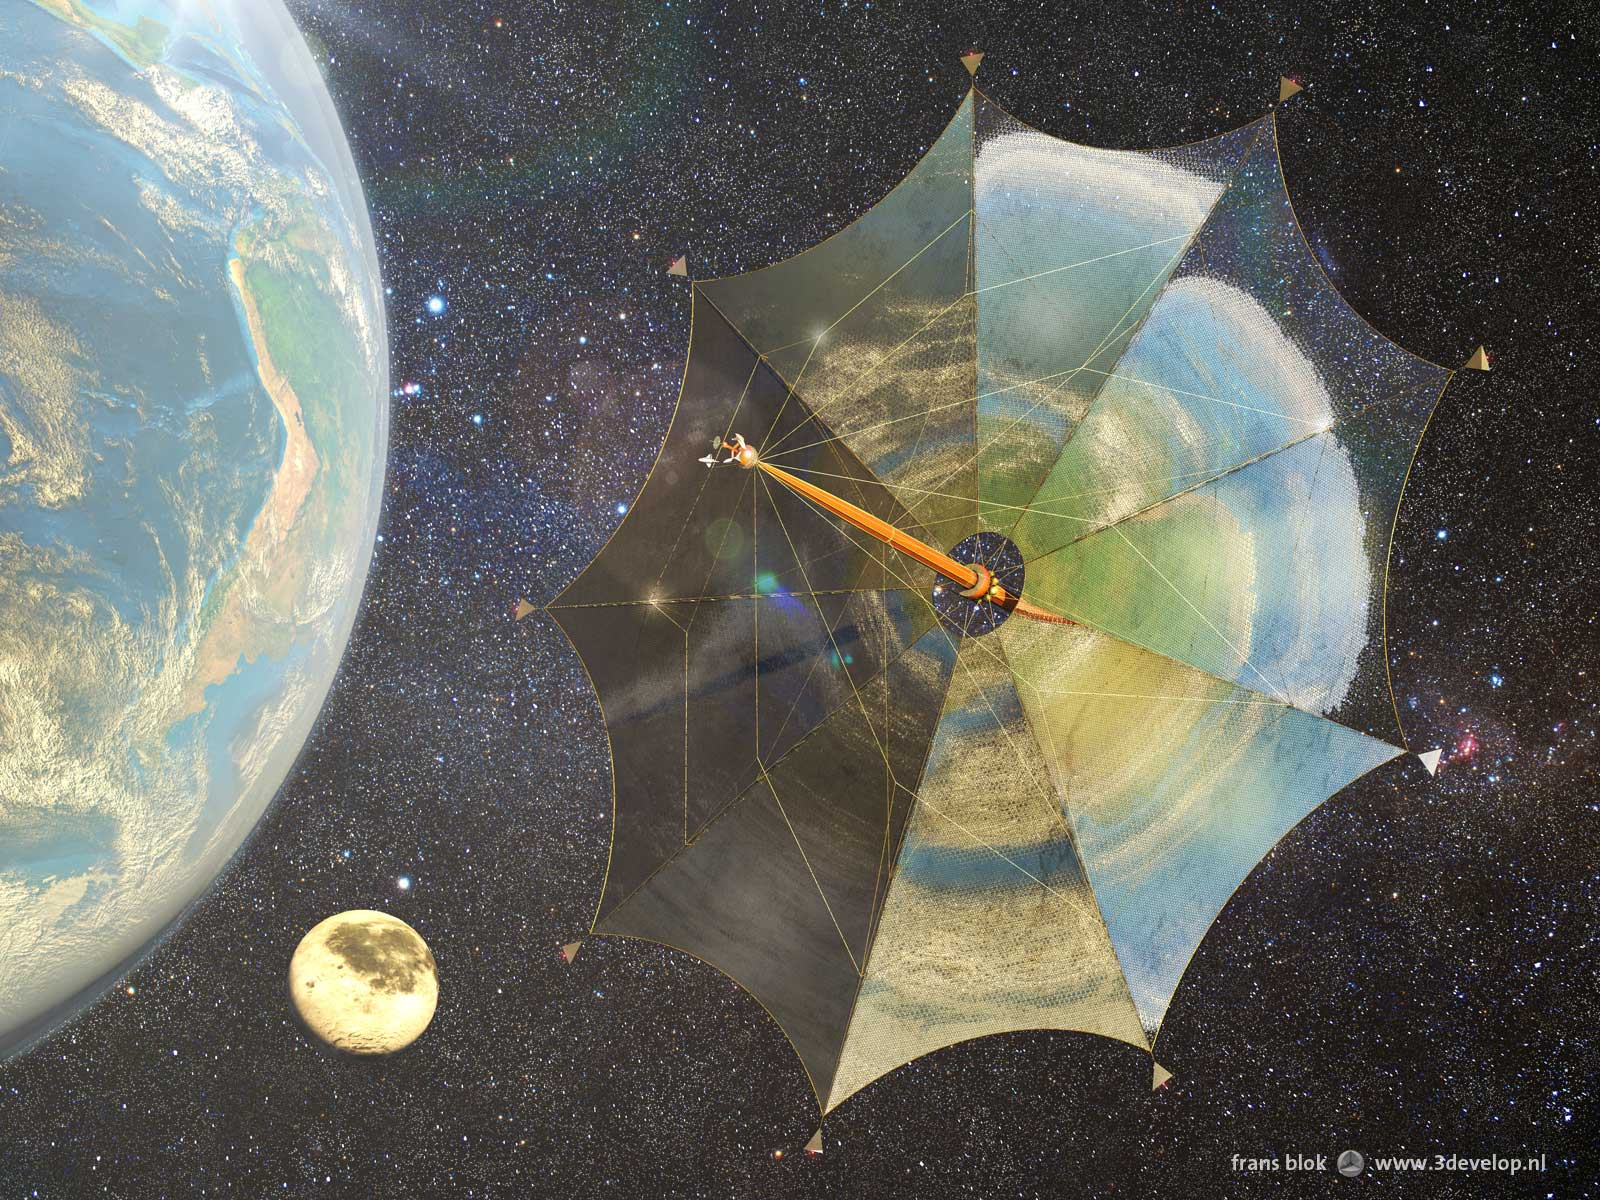 Solar sail Johannes Kepler on its way to the moons of Jupiter